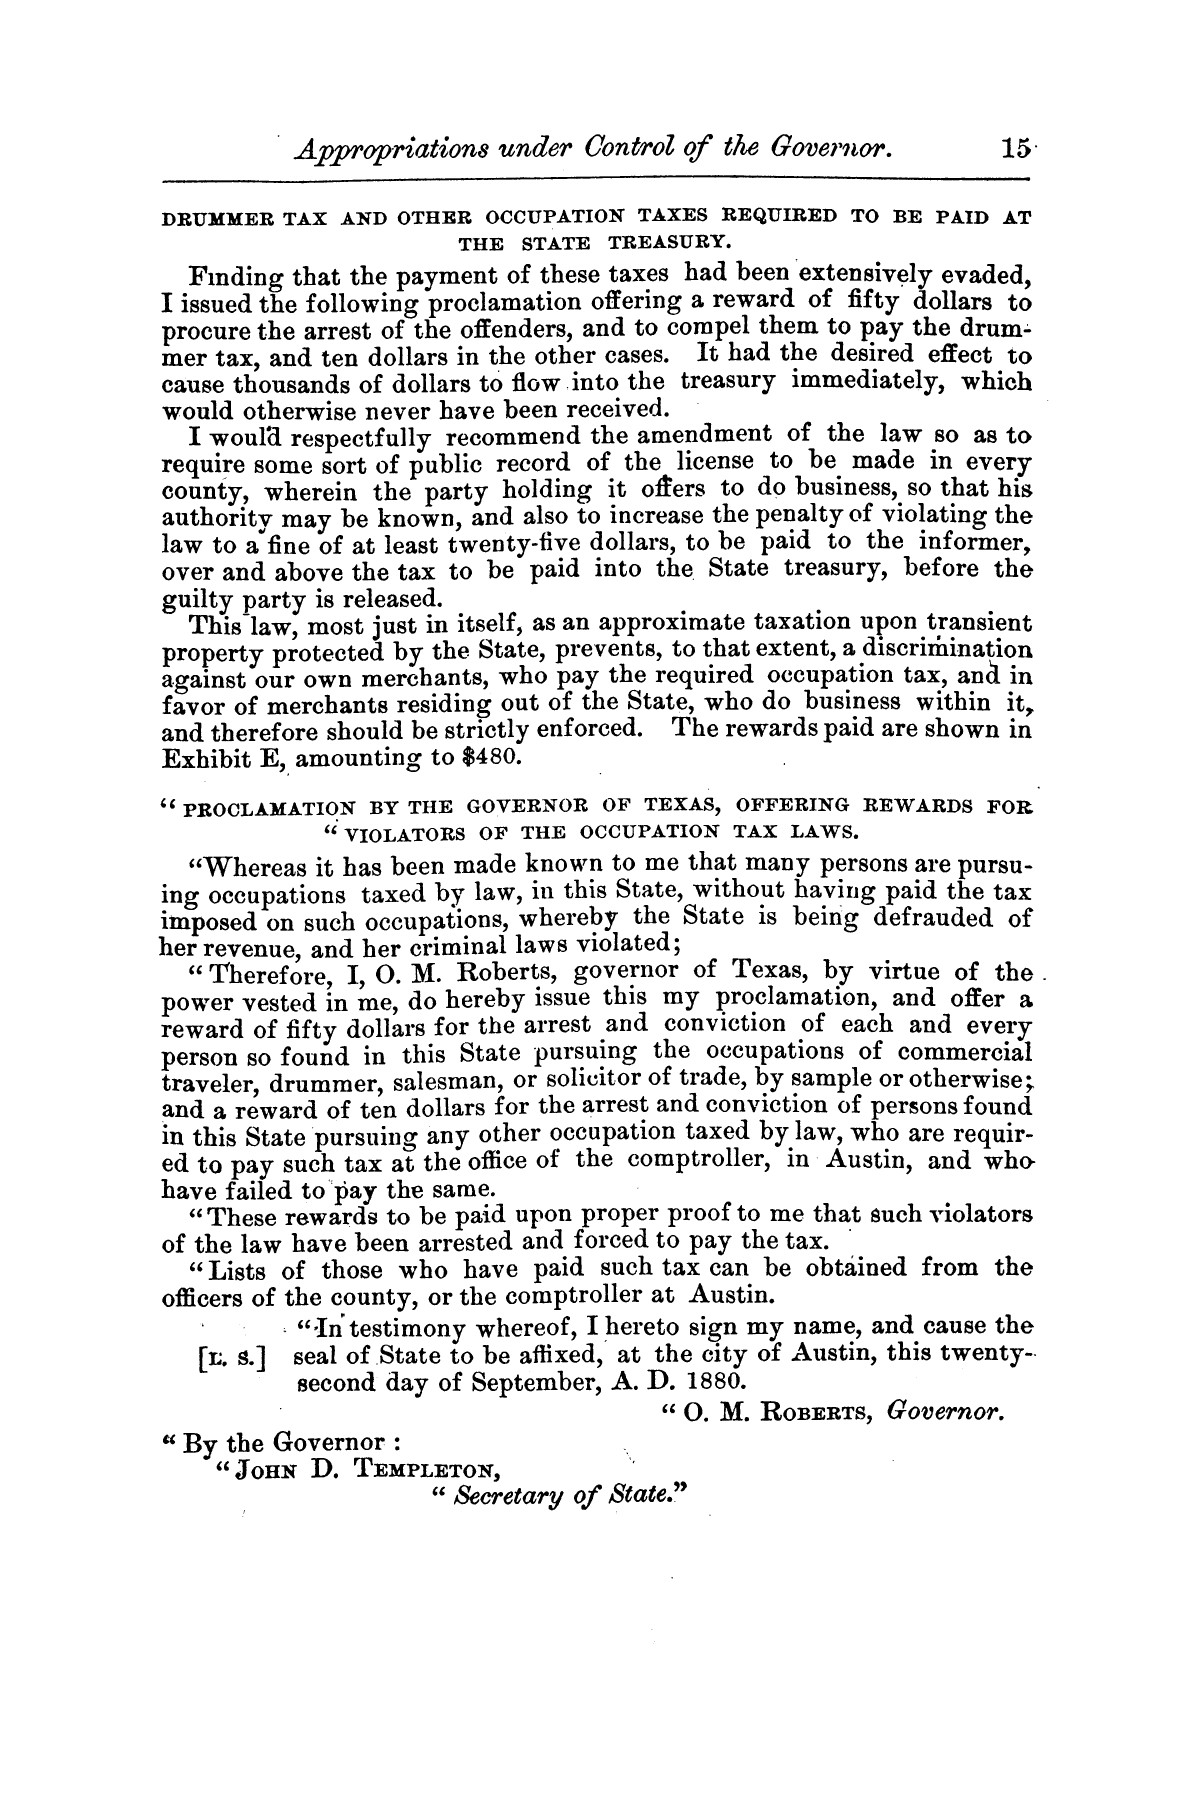 Message of Gov. O. M. Roberts on appropriations and expenditures under the control of the governor to the seventeenth legislature of the state of of Texas, convened at the city of Austin, in regular session, January 11, 1881.                                                                                                      [Sequence #]: 15 of 23